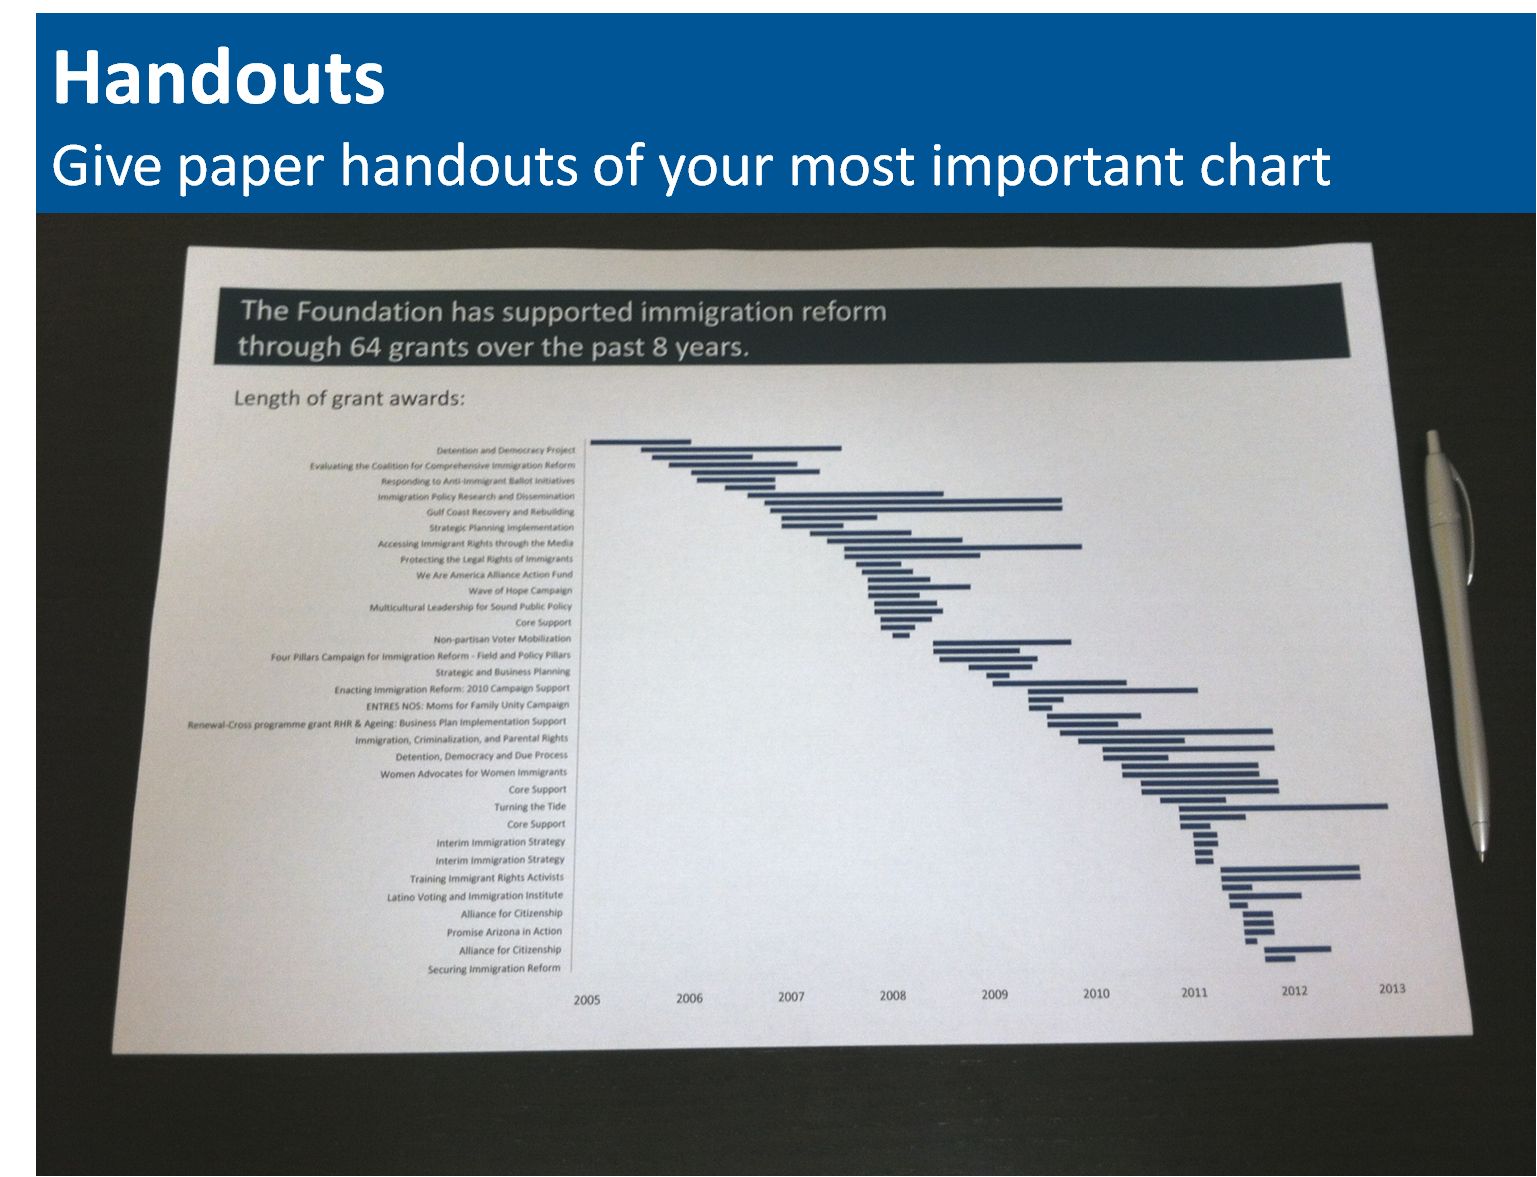 handout_with_most_important_chart